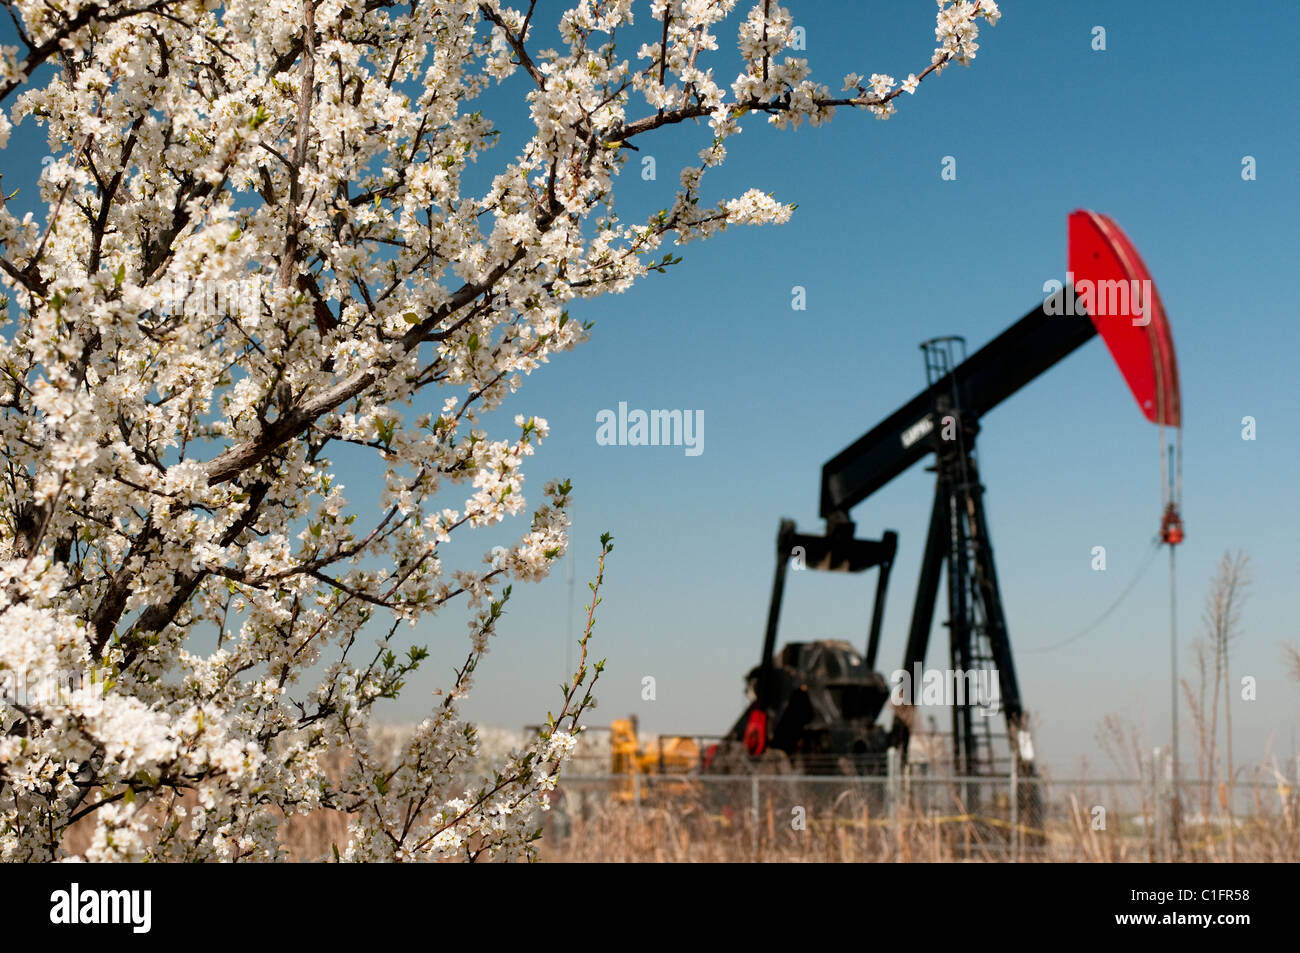 Oil well and fruit tree blossoms in San Joaquin Valley near Bakersfield California USA Stock Photo